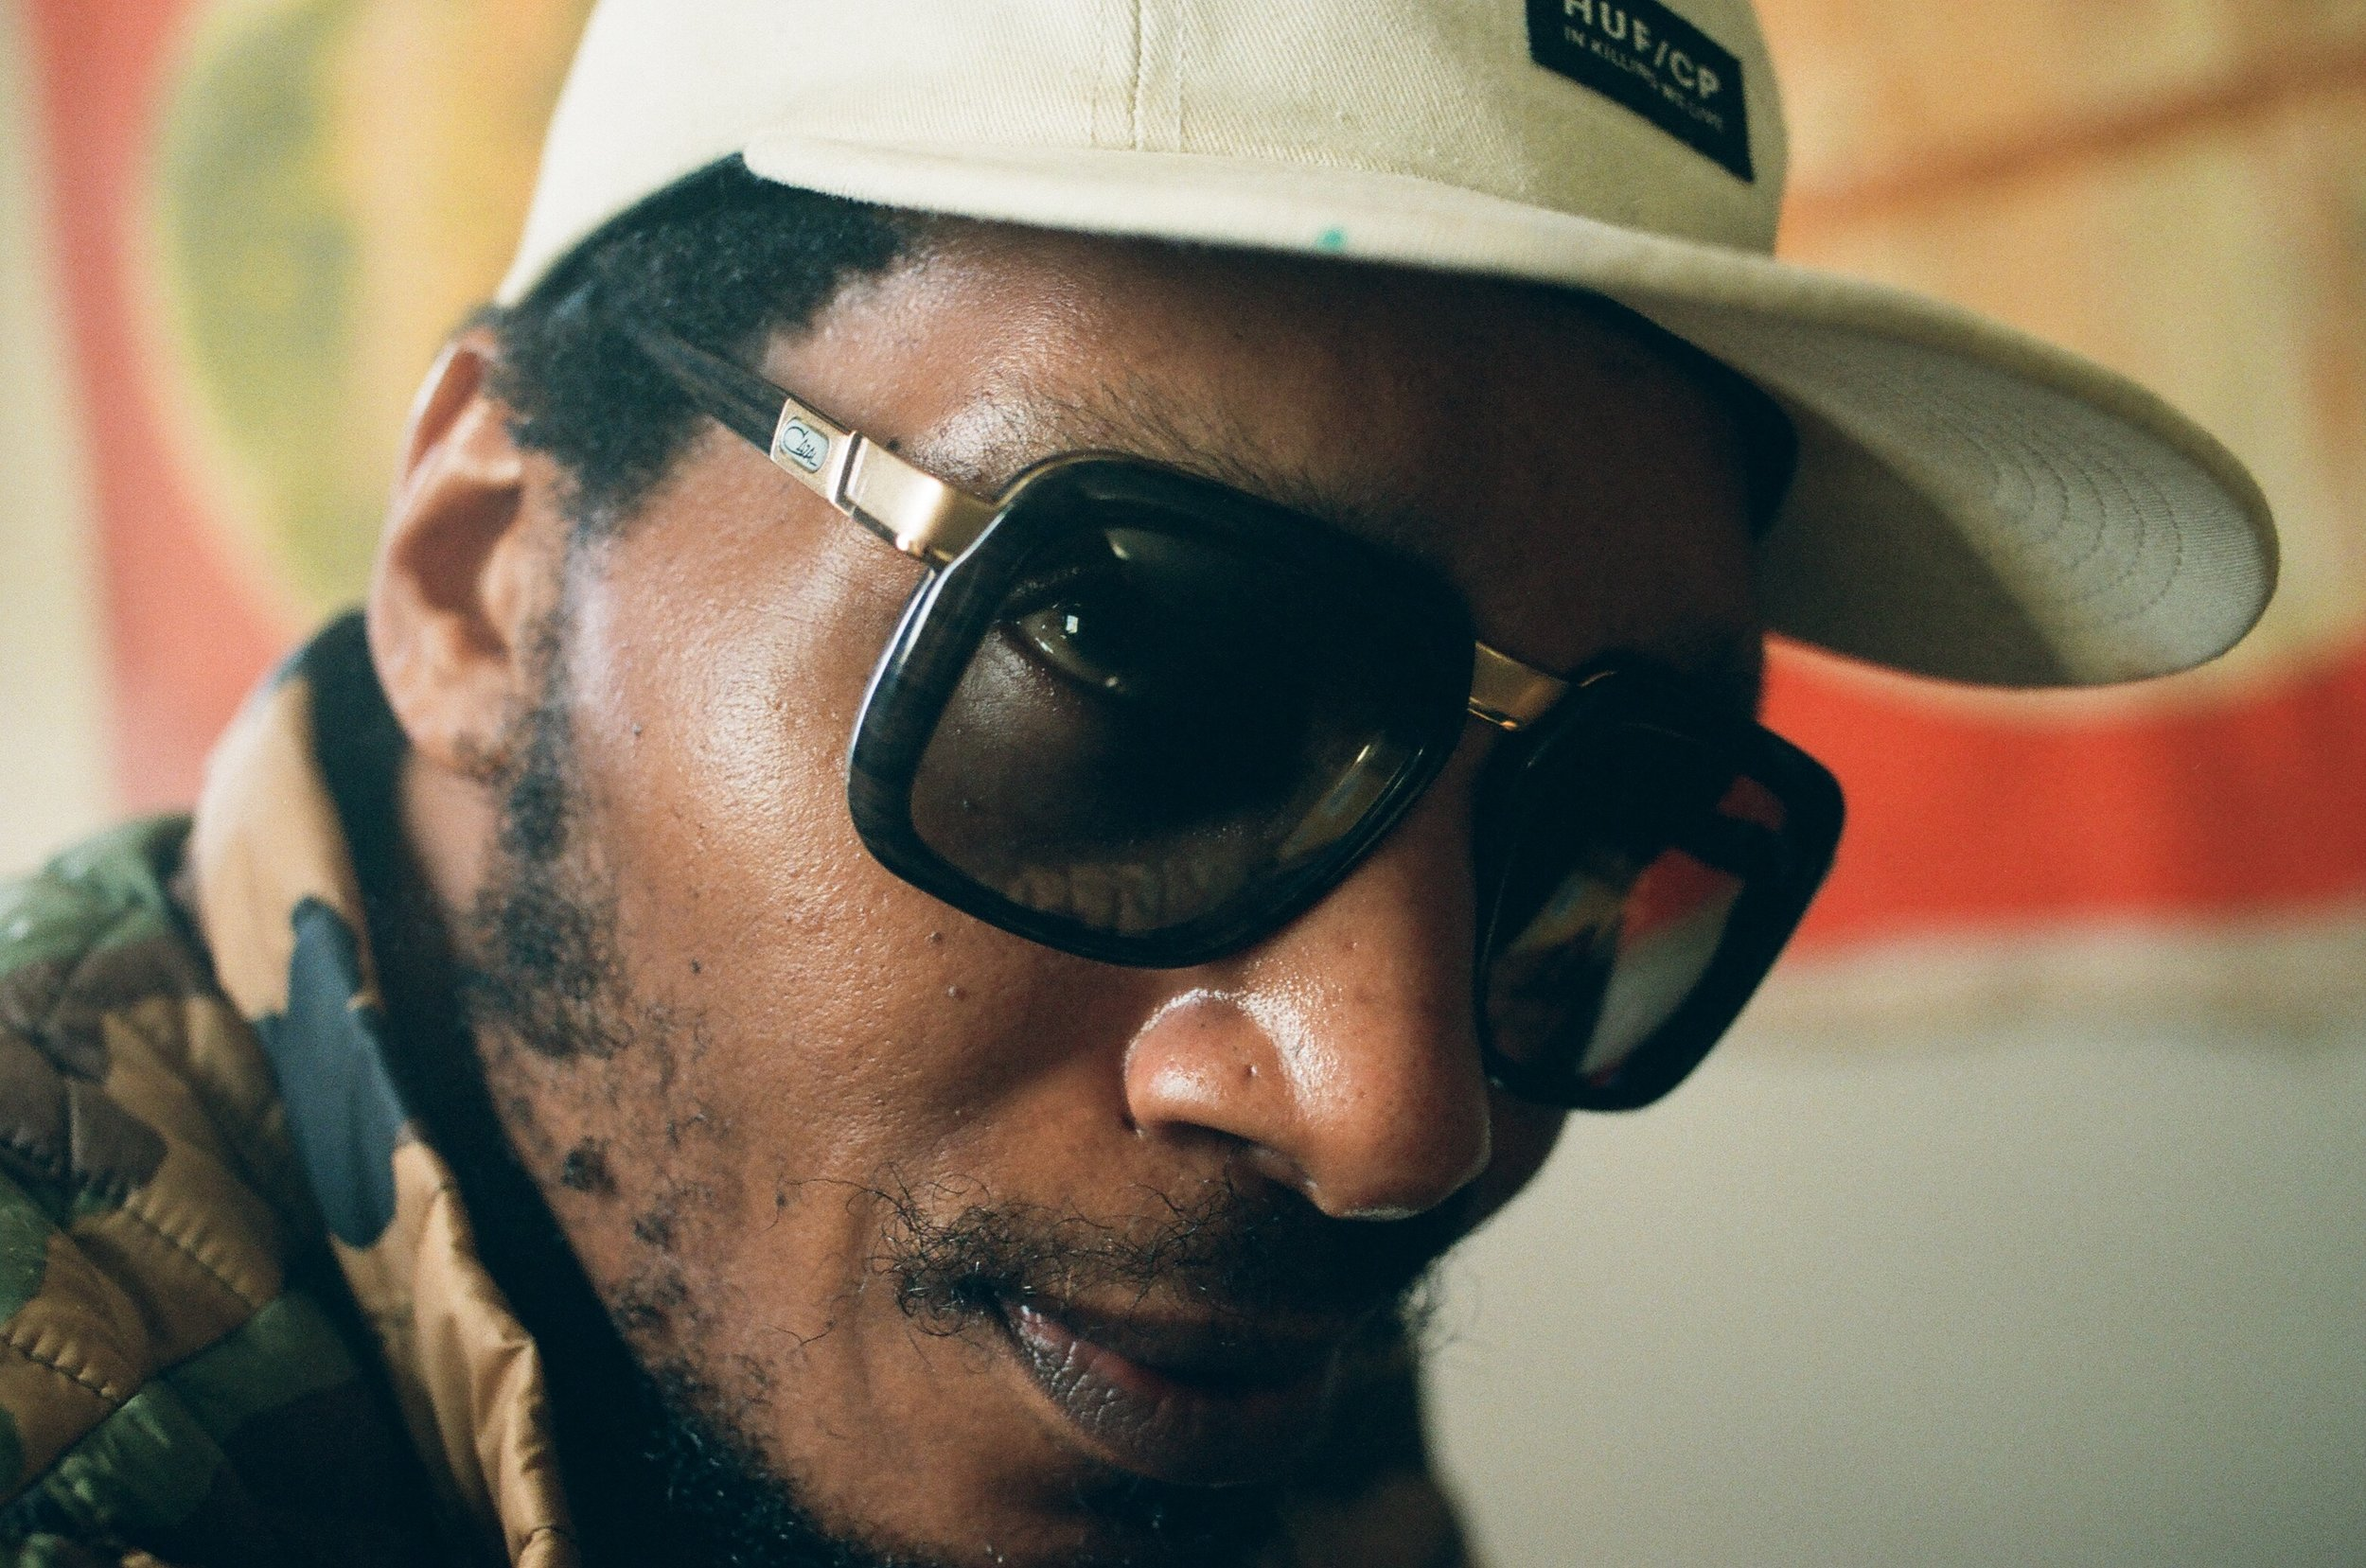 Del the Funky Homosapien for The Hundreds